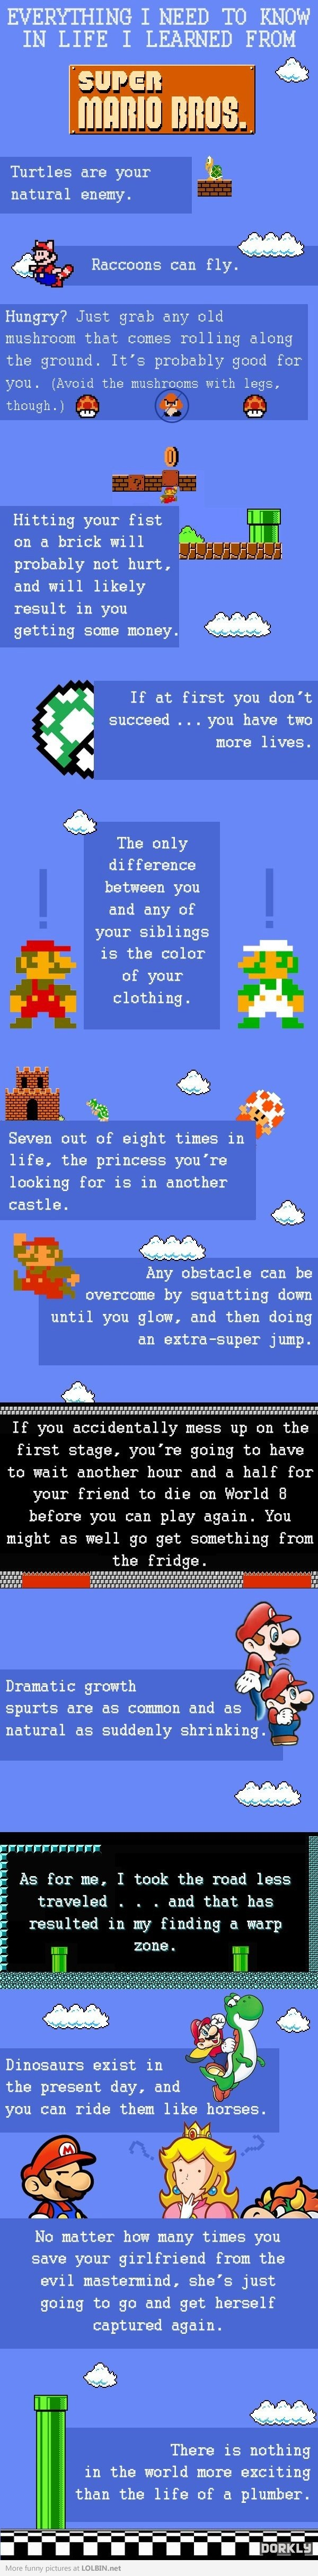 Everything I need to know in life, I learned from Super Mario Bros.